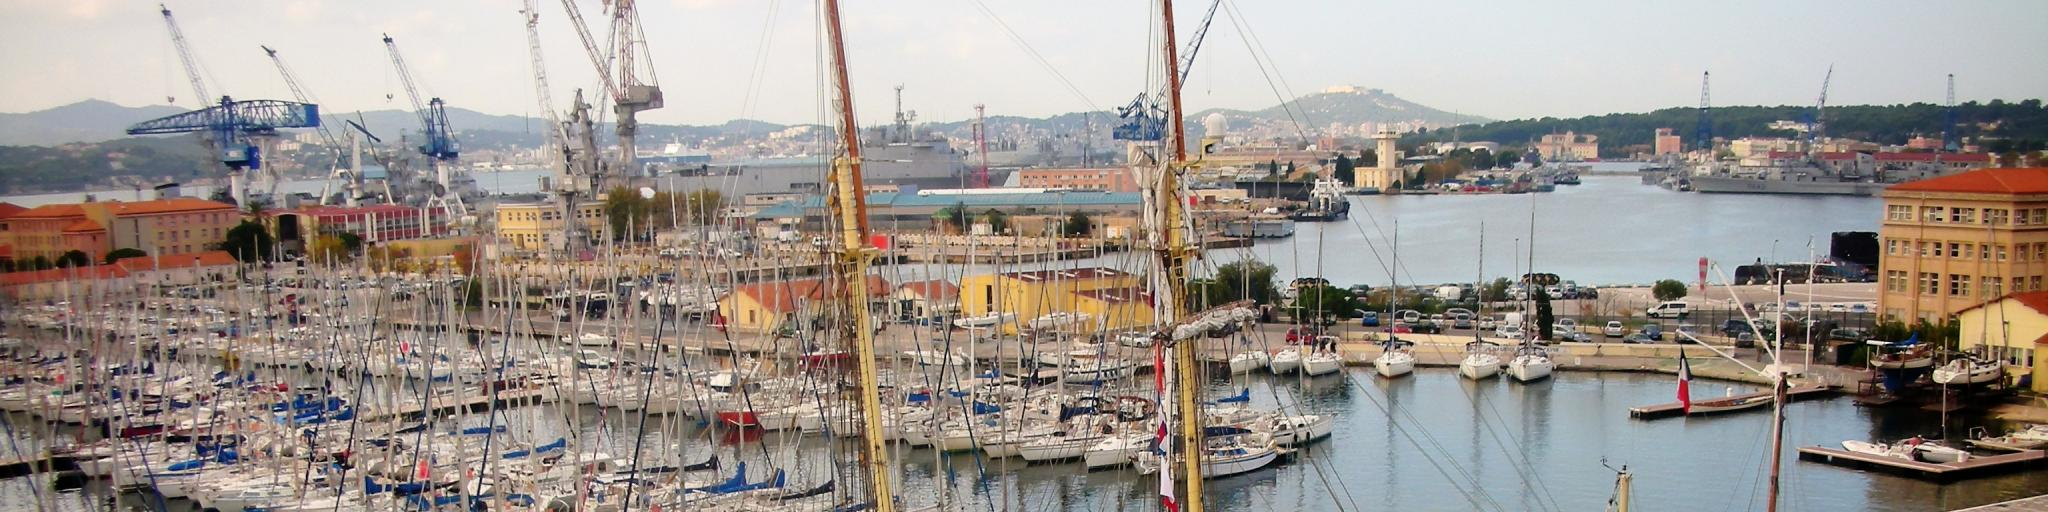 Boats in the harbour of Toulon in France